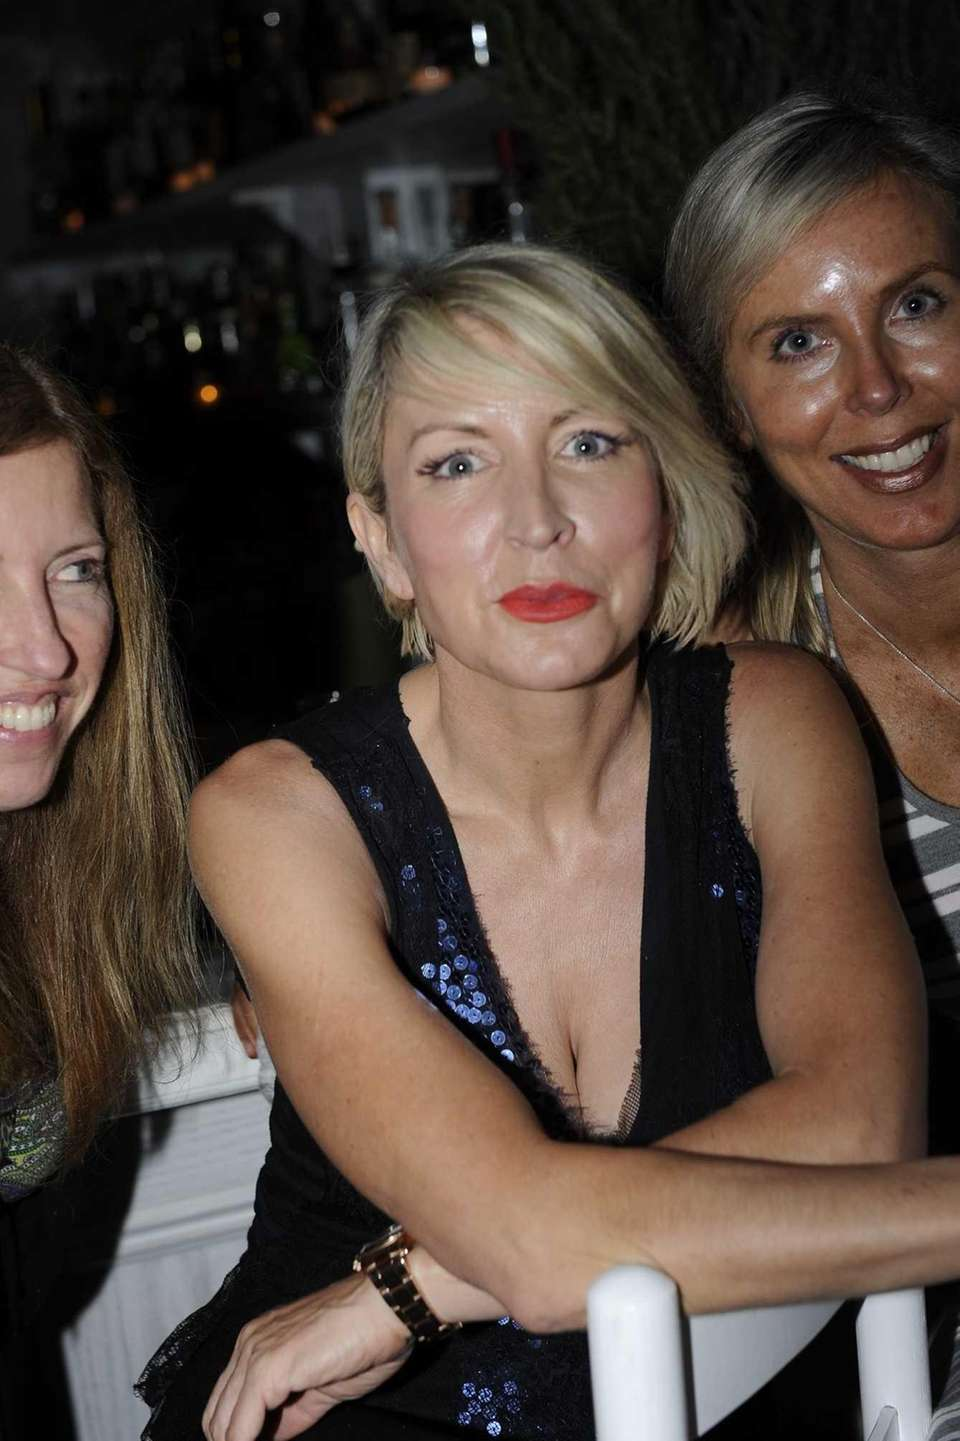 Heather Mills, ex-wife of singer Paul McCartney, hangs